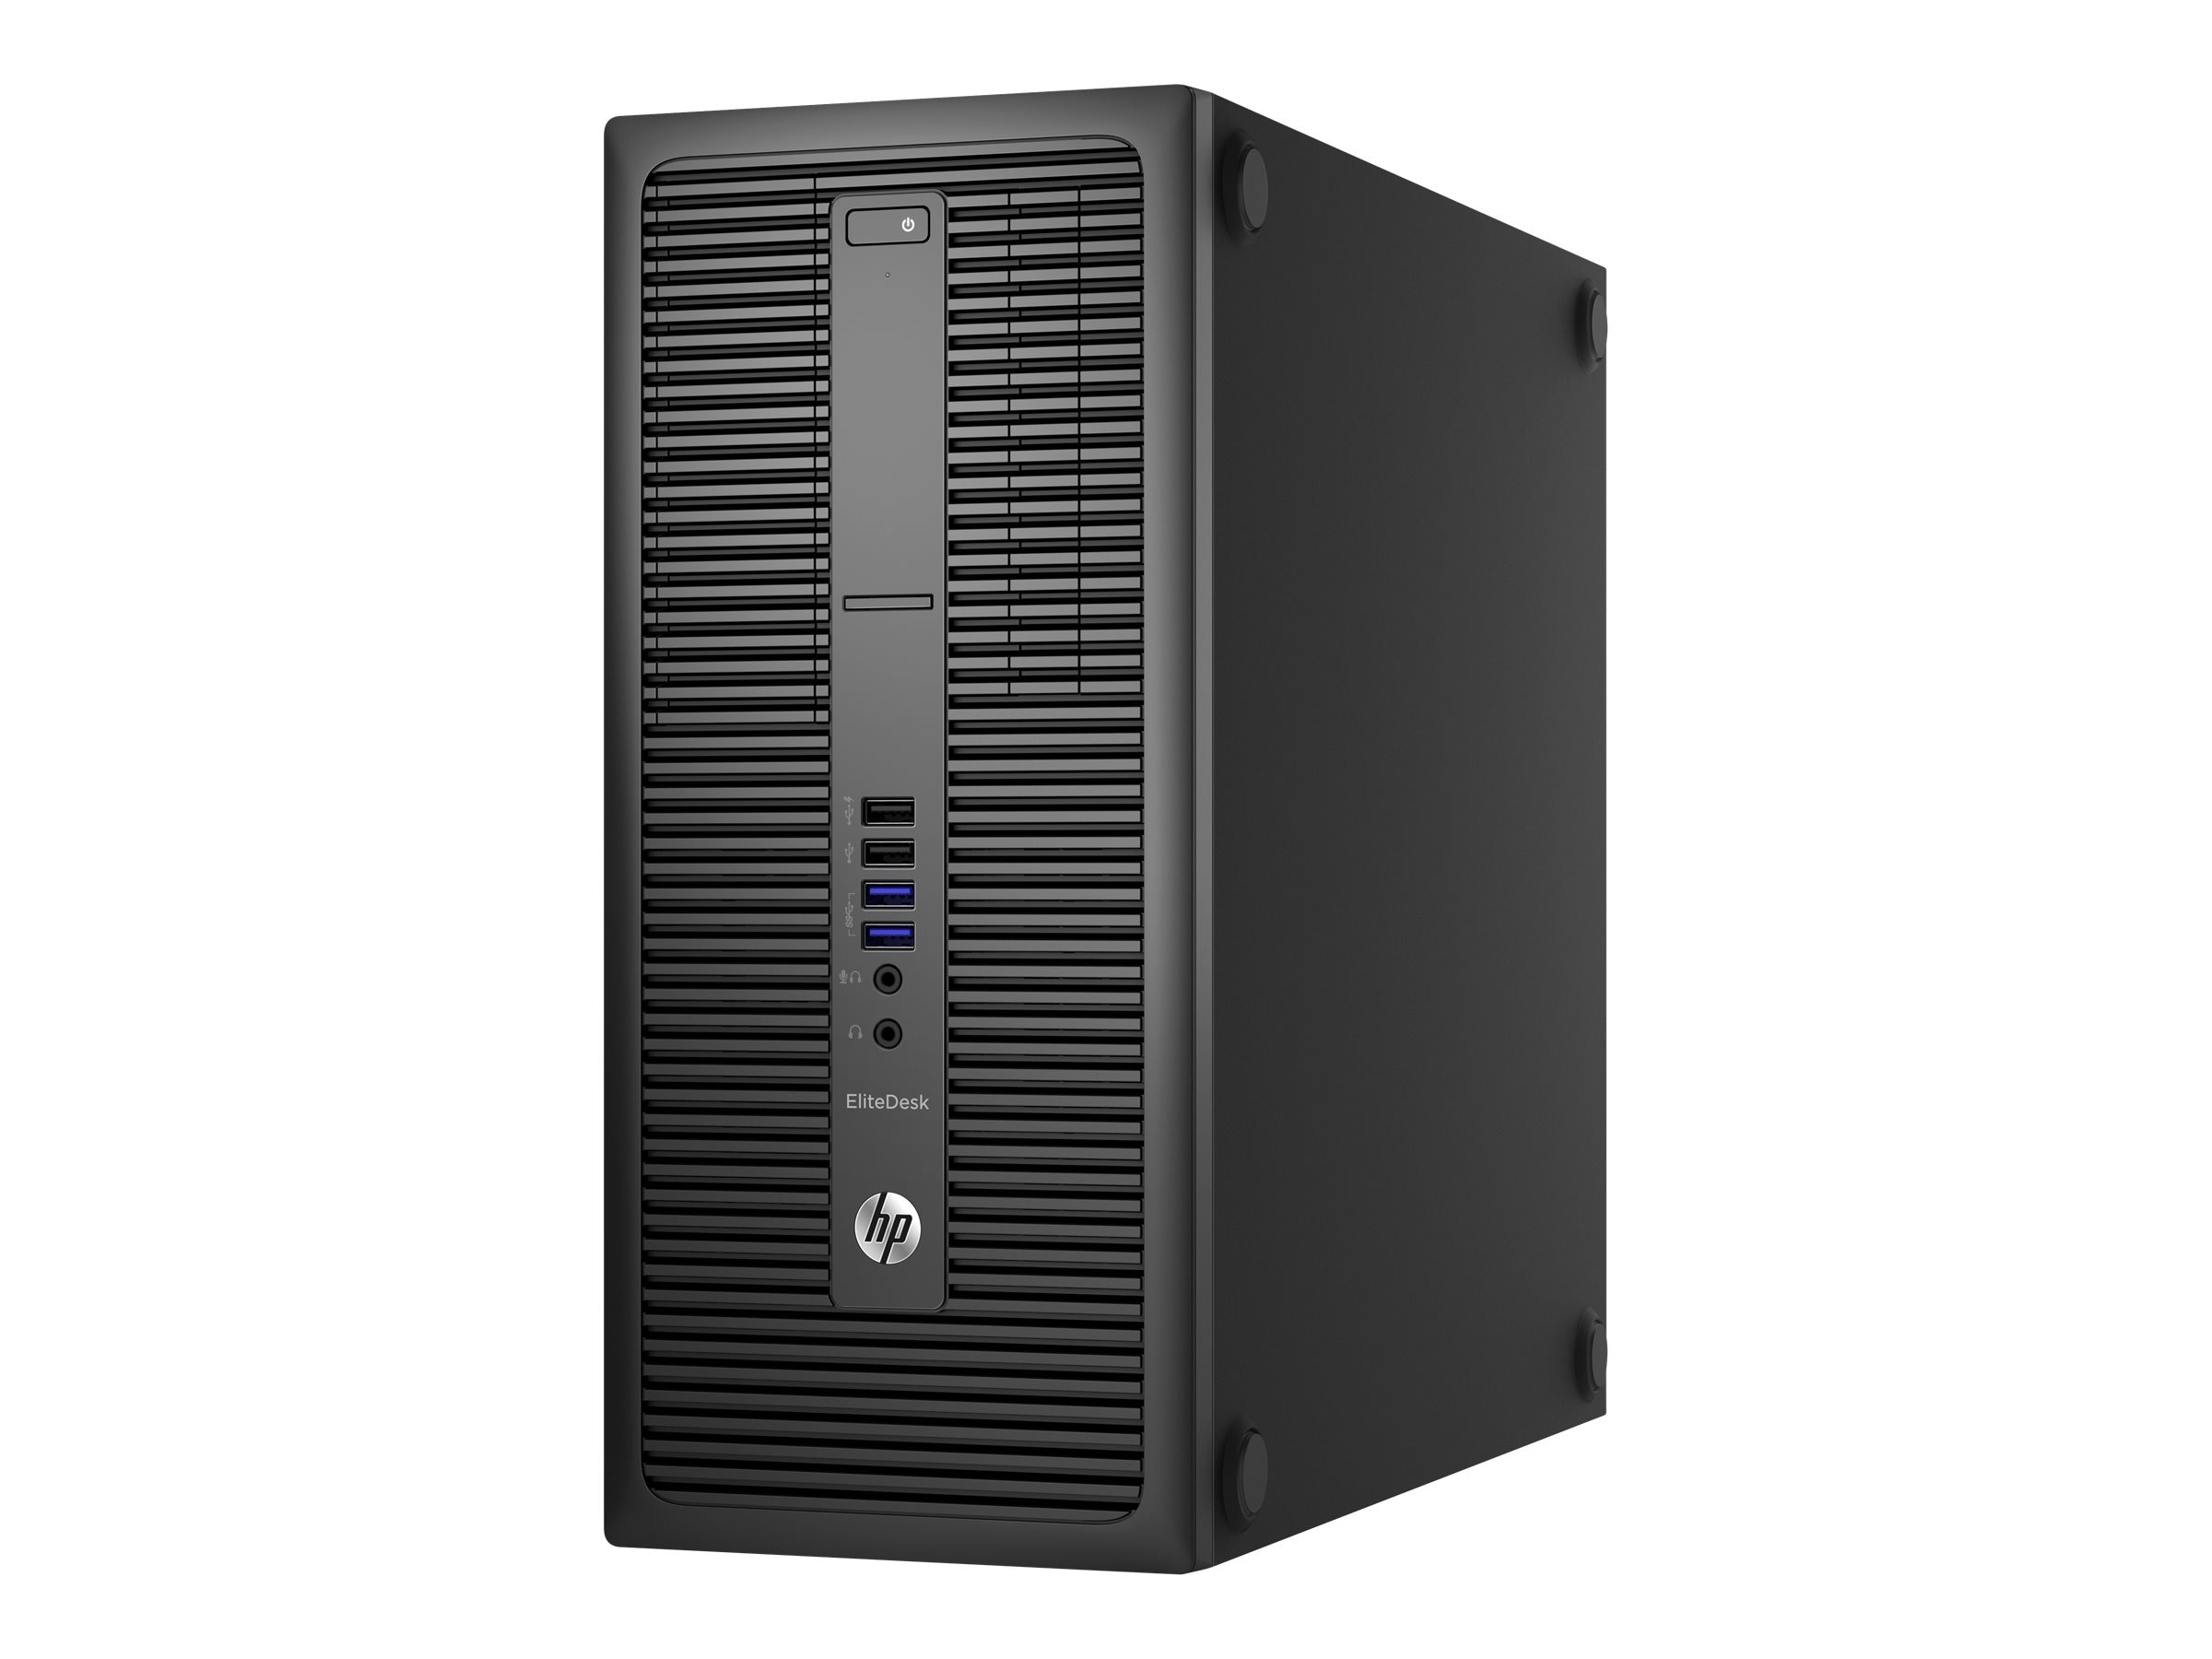 HP EliteDesk 800 G2 3.4GHz Core i7 4GB RAM 500GB hard drive, P4K18UT#ABA, 30729855, Desktops